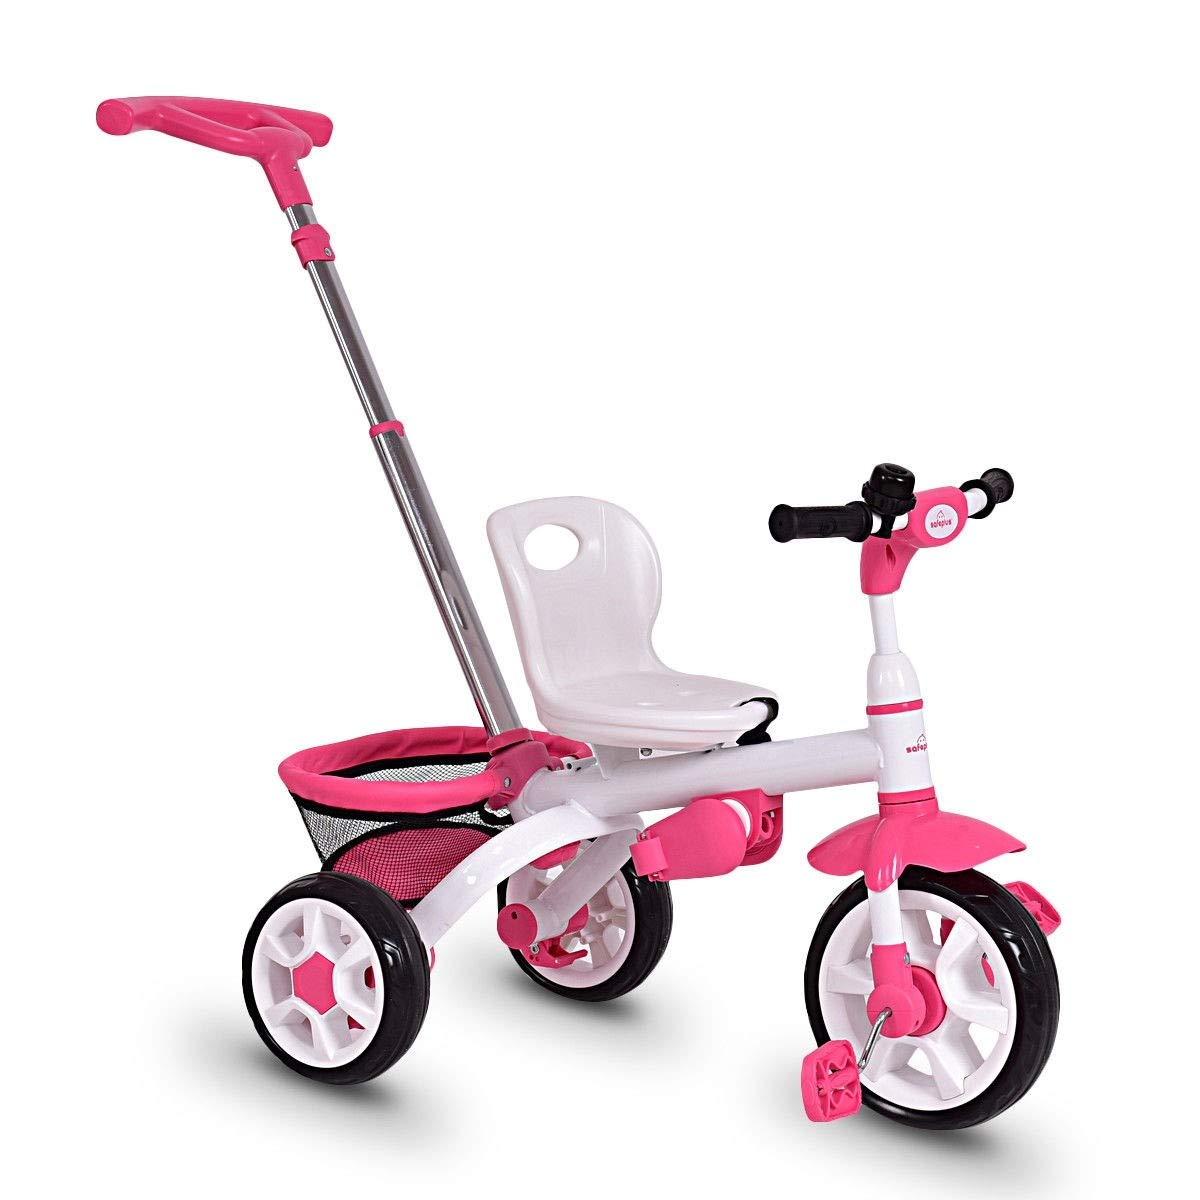 Pink CHOOSEandBUY 4-in-1 Detachable Baby Stroller Tricycle with Round Canopy Children Classic Wheels Comfortable Cushion